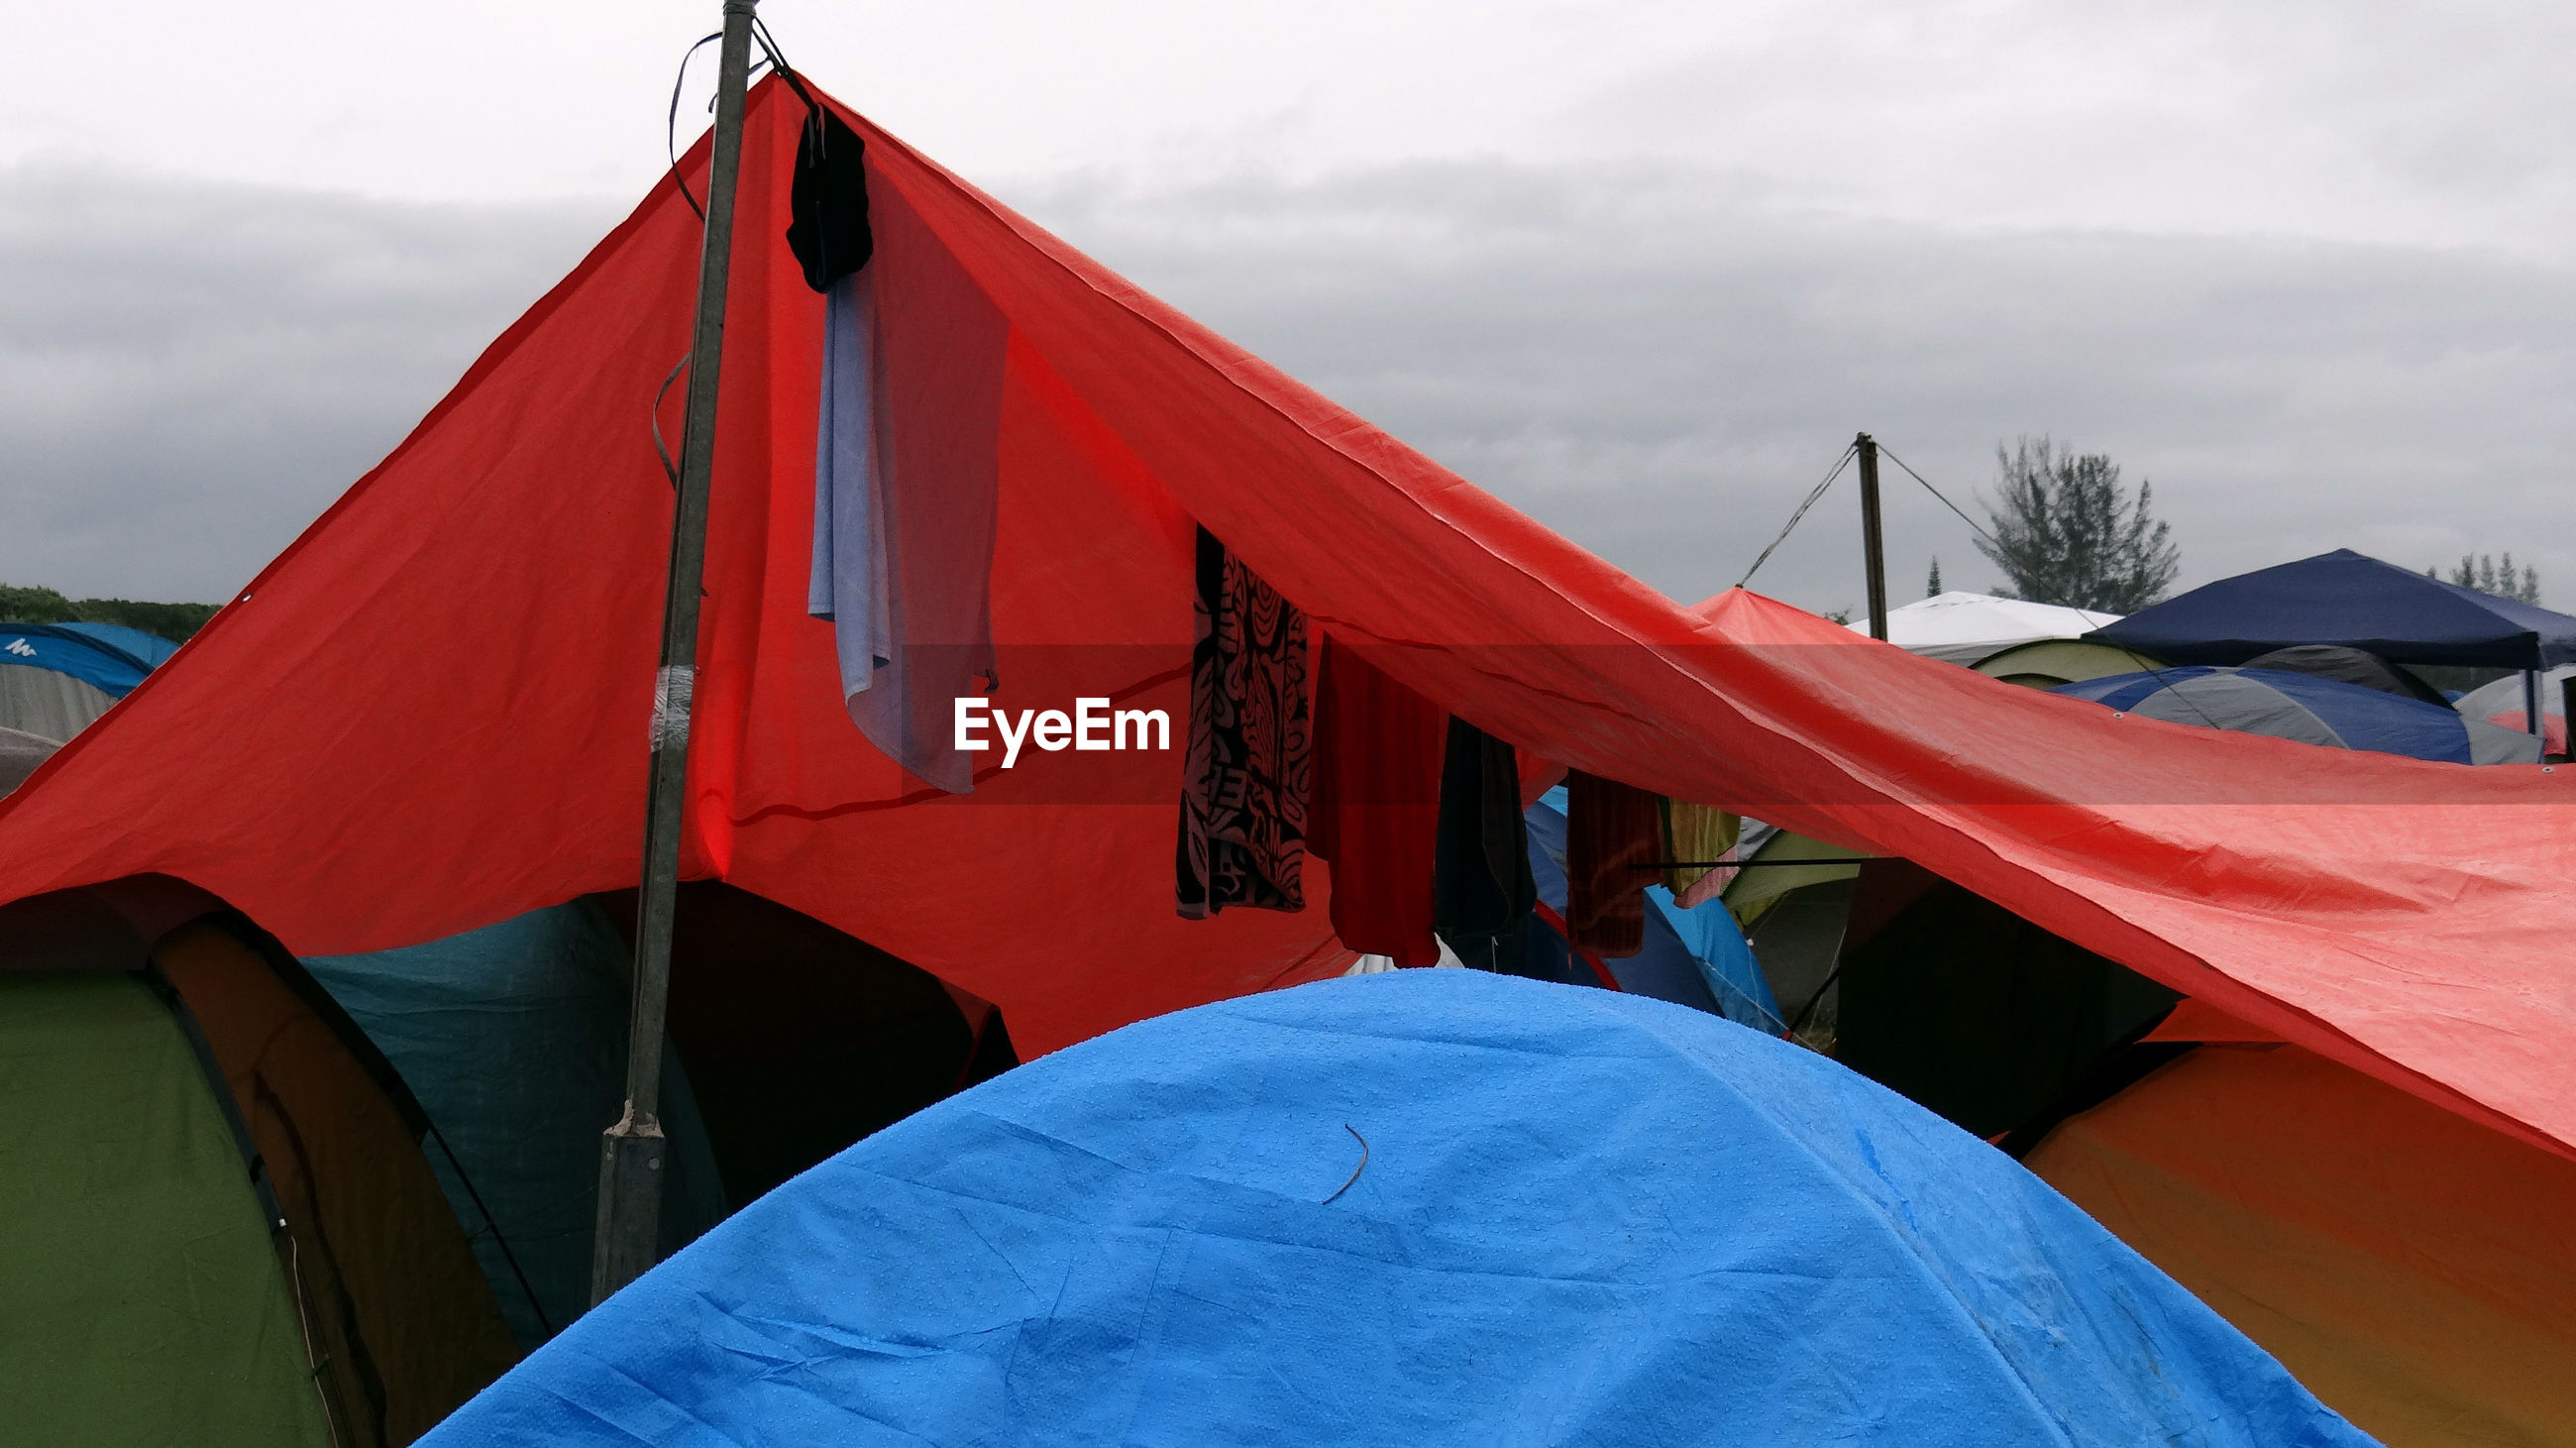 Clothes line in the tent